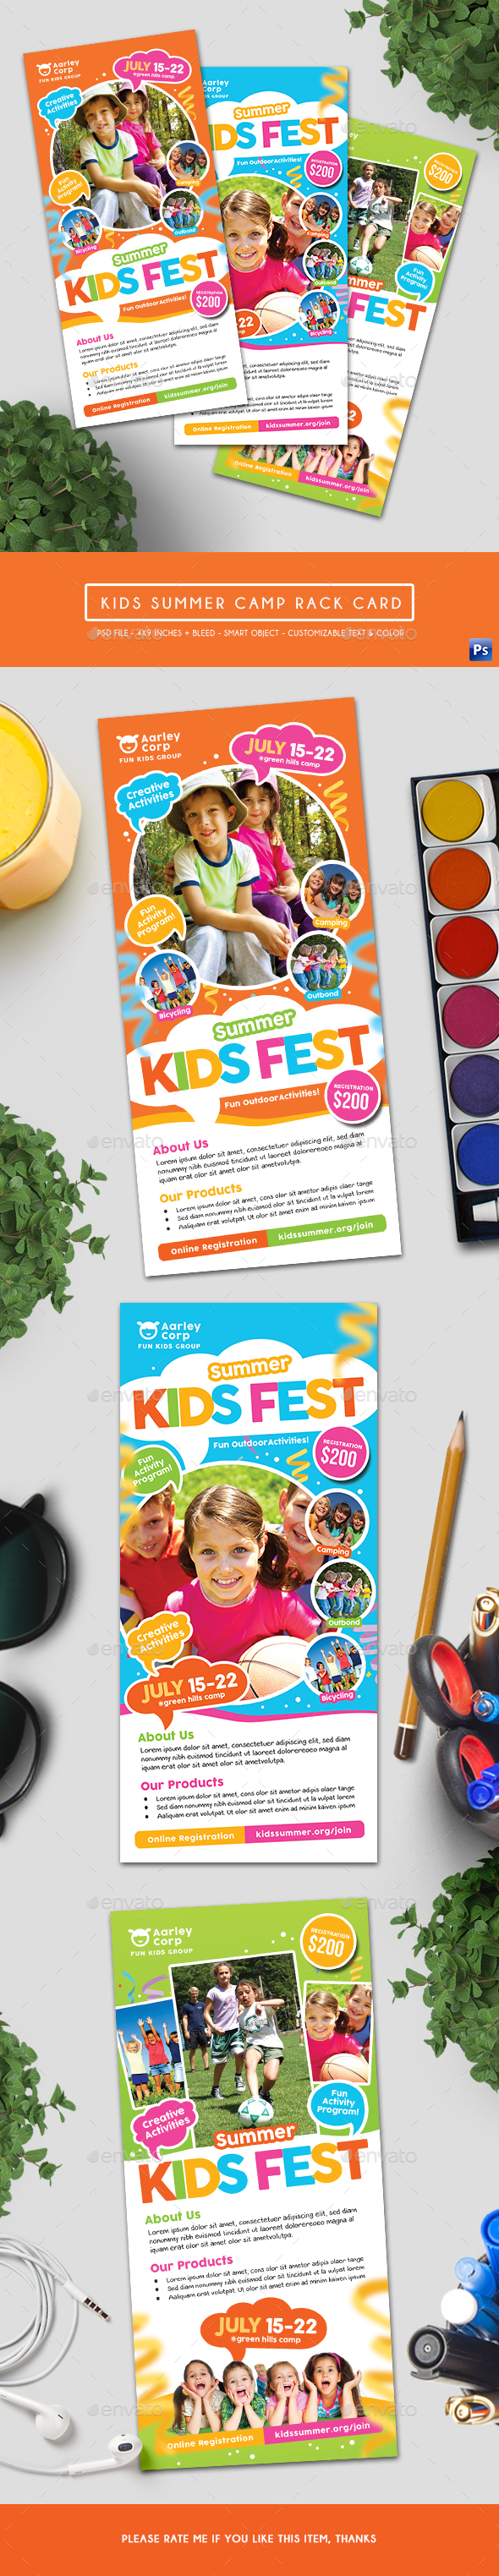 Kids Summer Camp Rack Card